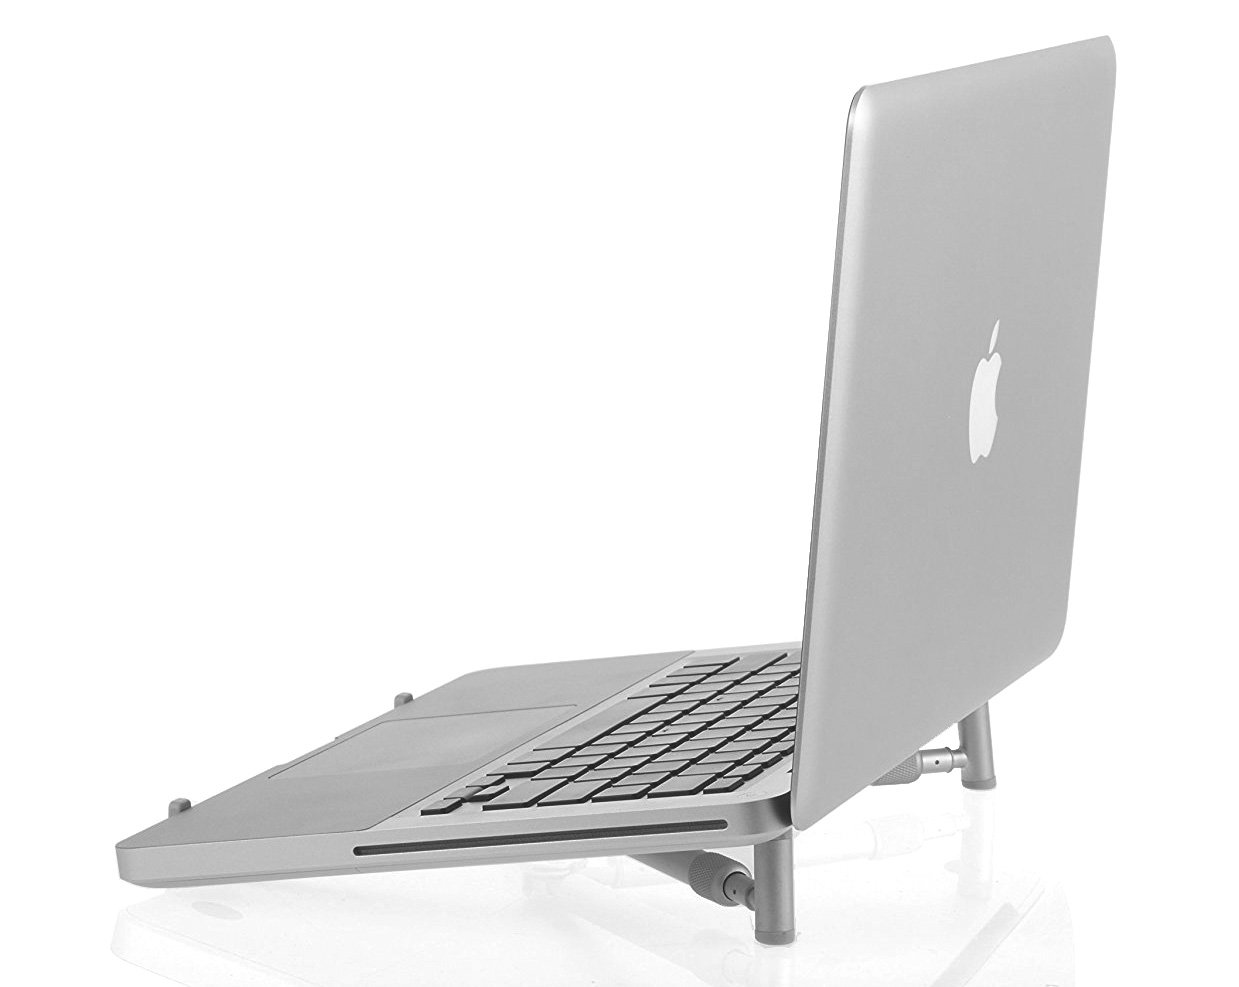 Arkscan LS22 Laptop Stand for Macbook and Notebook, Aluminum Ergonomic Lightweight Adjustable Portable Cooling Stand for 12 inches to 17 inches Computer Devices